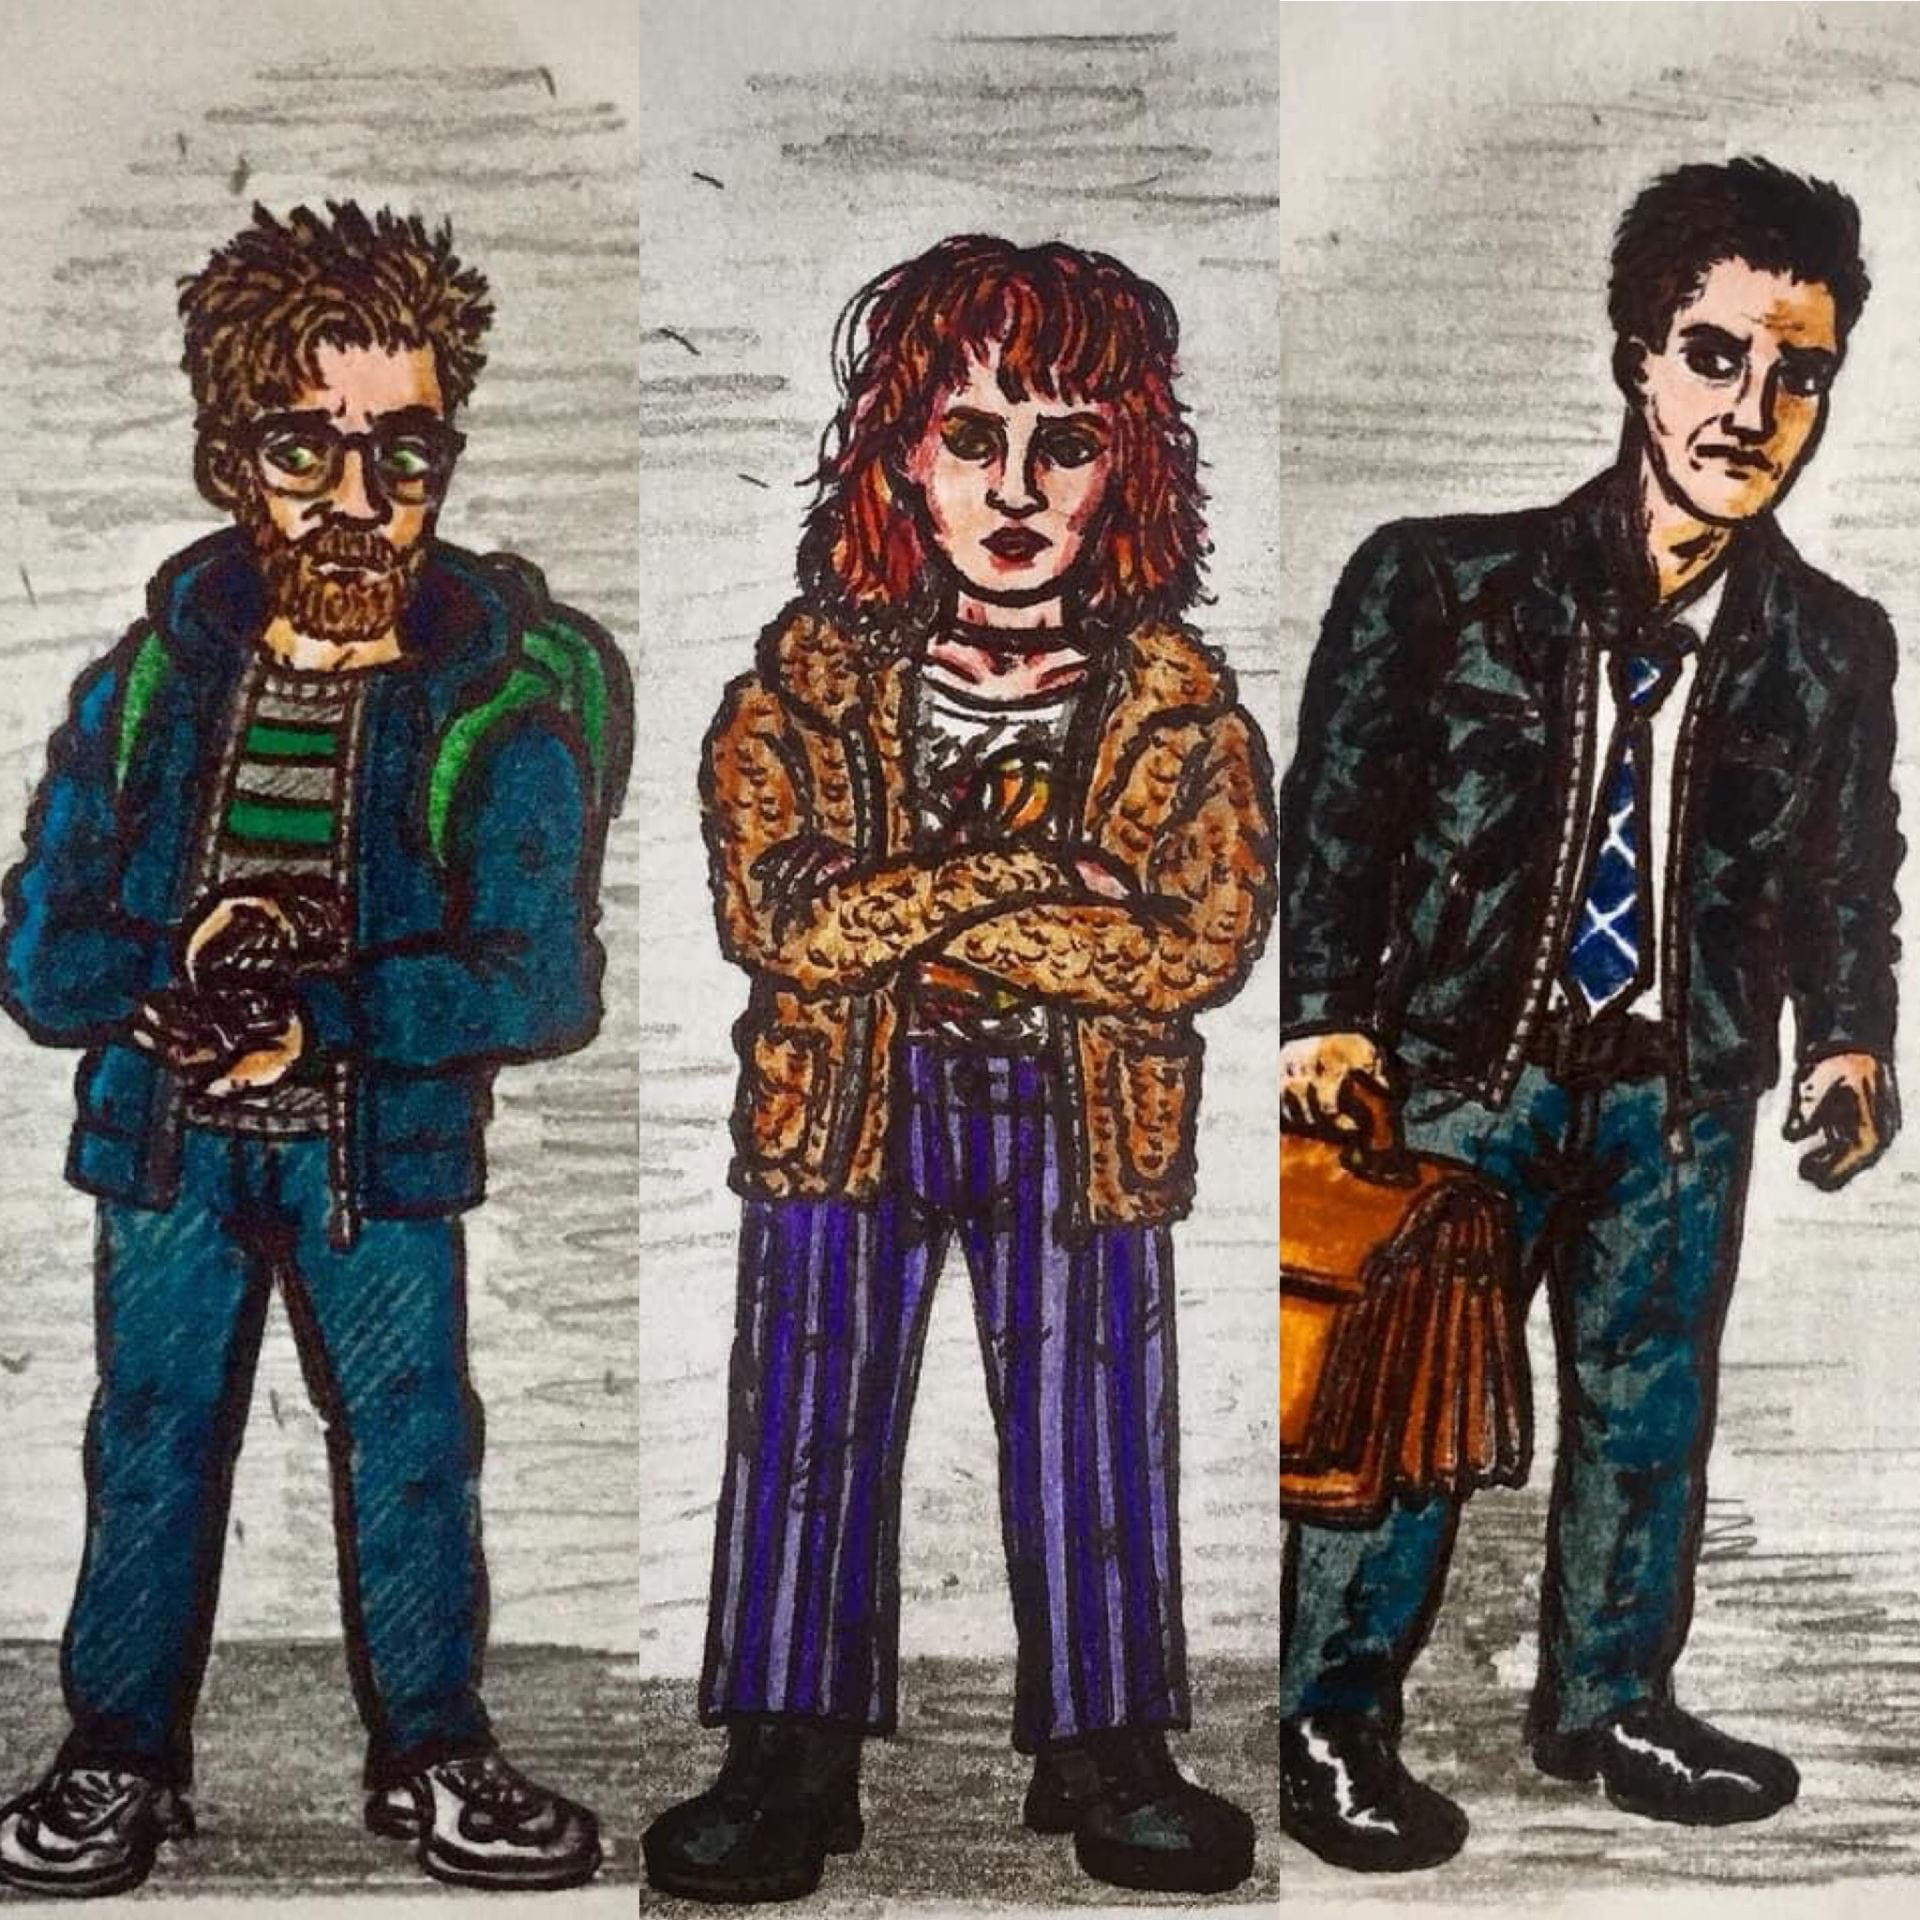 Drawings of characters; Ned, Evie & Dan. Created by James Bell.